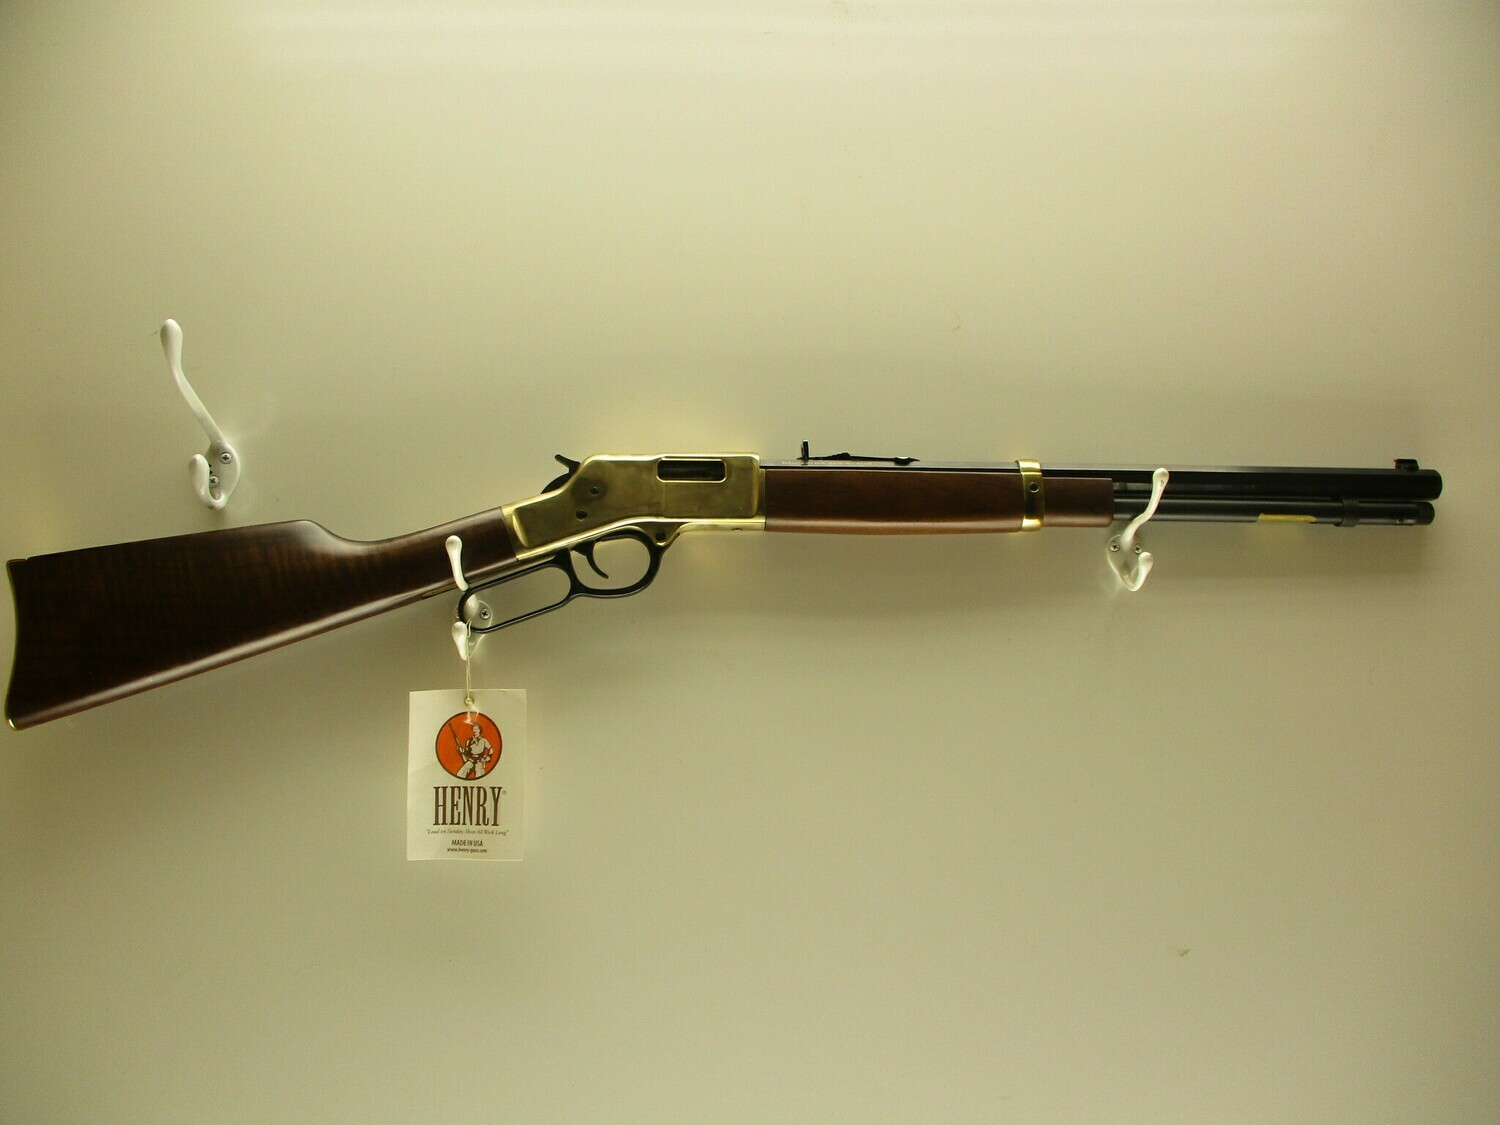 34 Henry mod. Big Boy 44 REM MAG cal lever action rifle octagon bbl NIB ser # BB26091